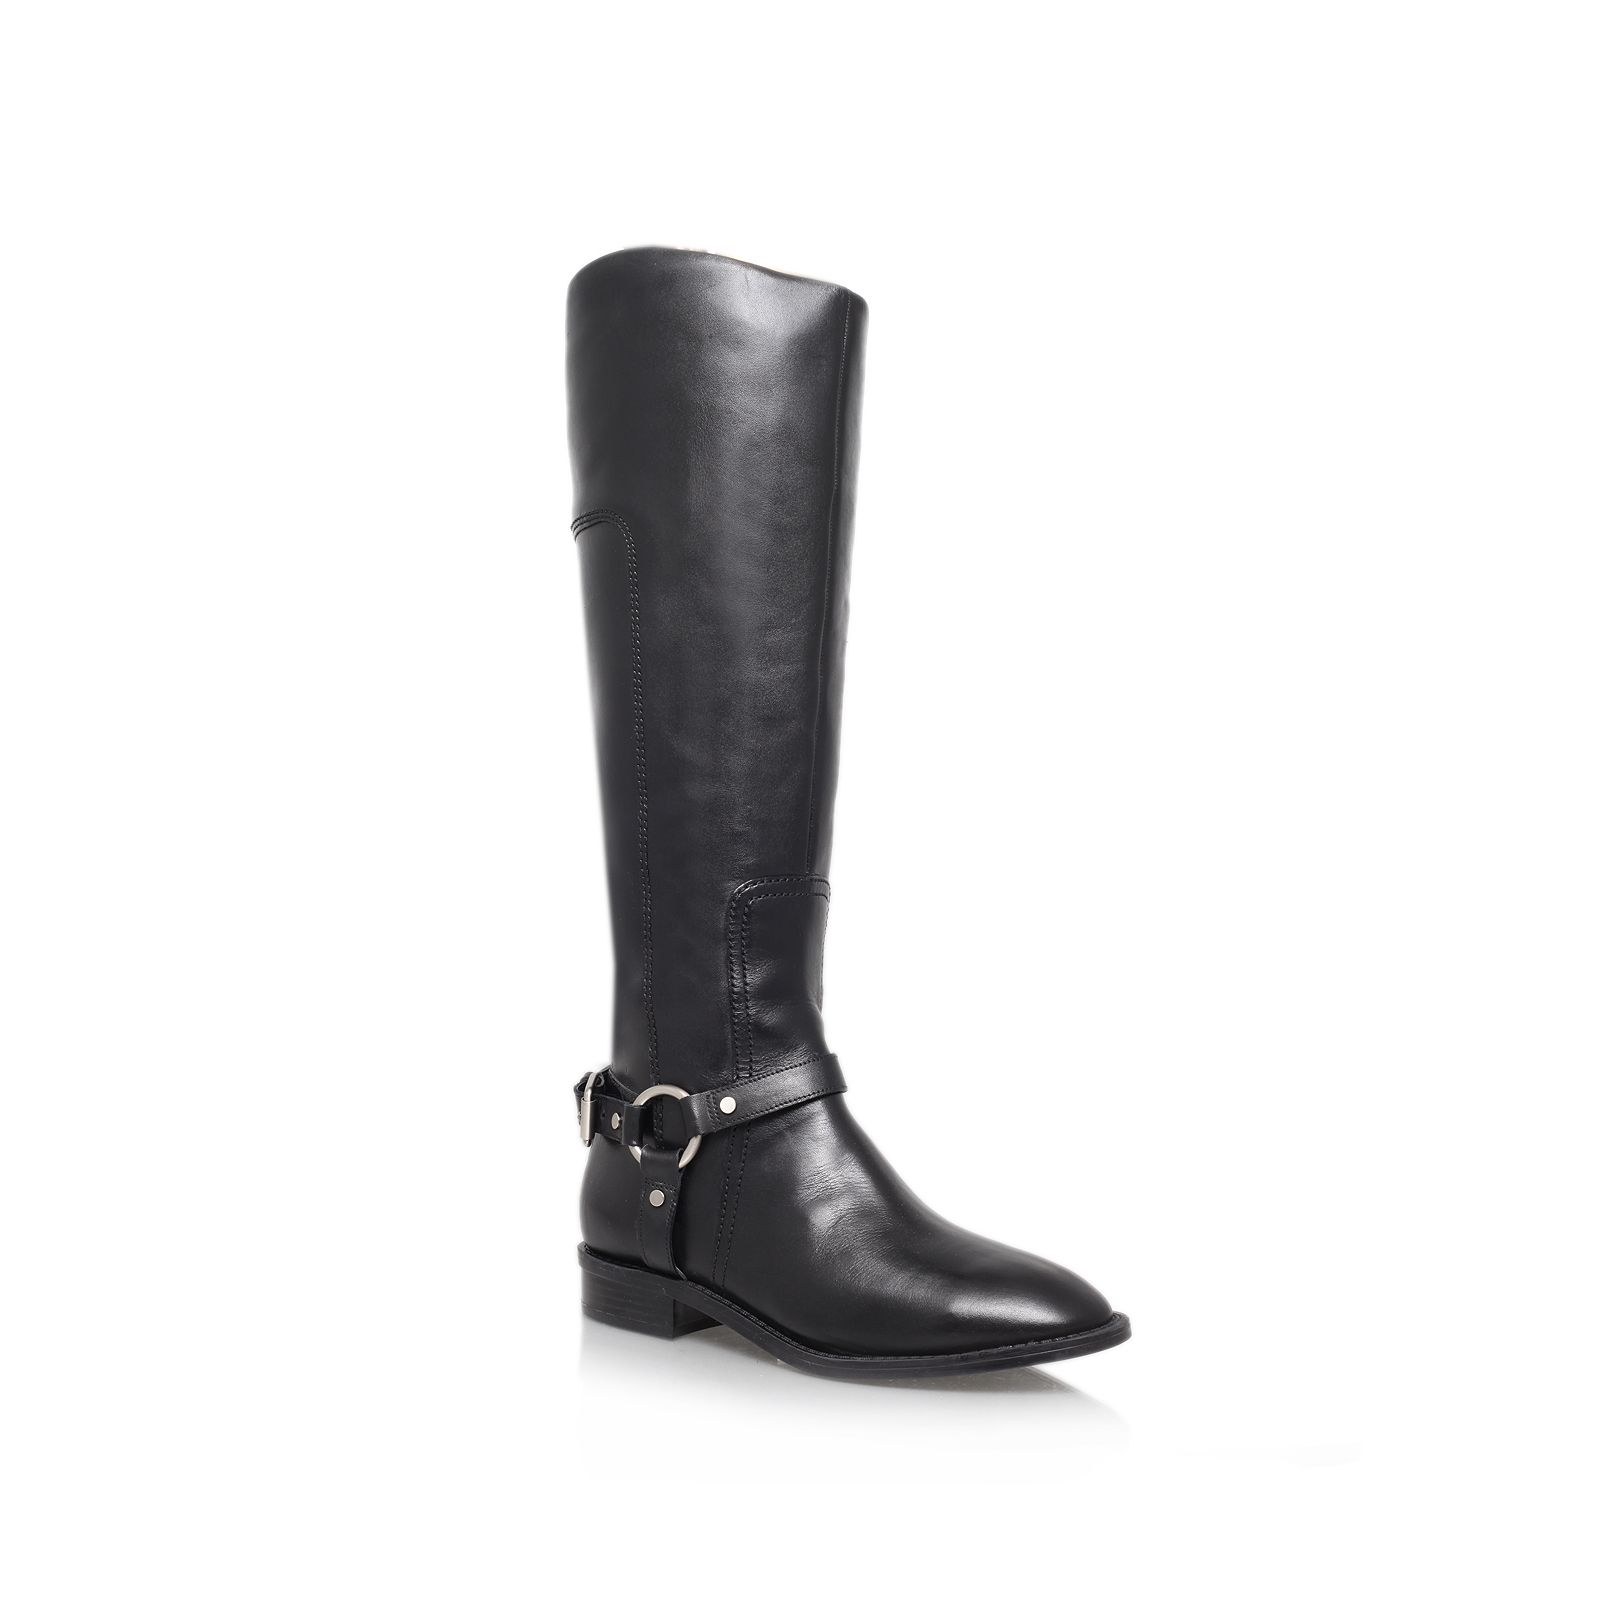 Batley knee high boots